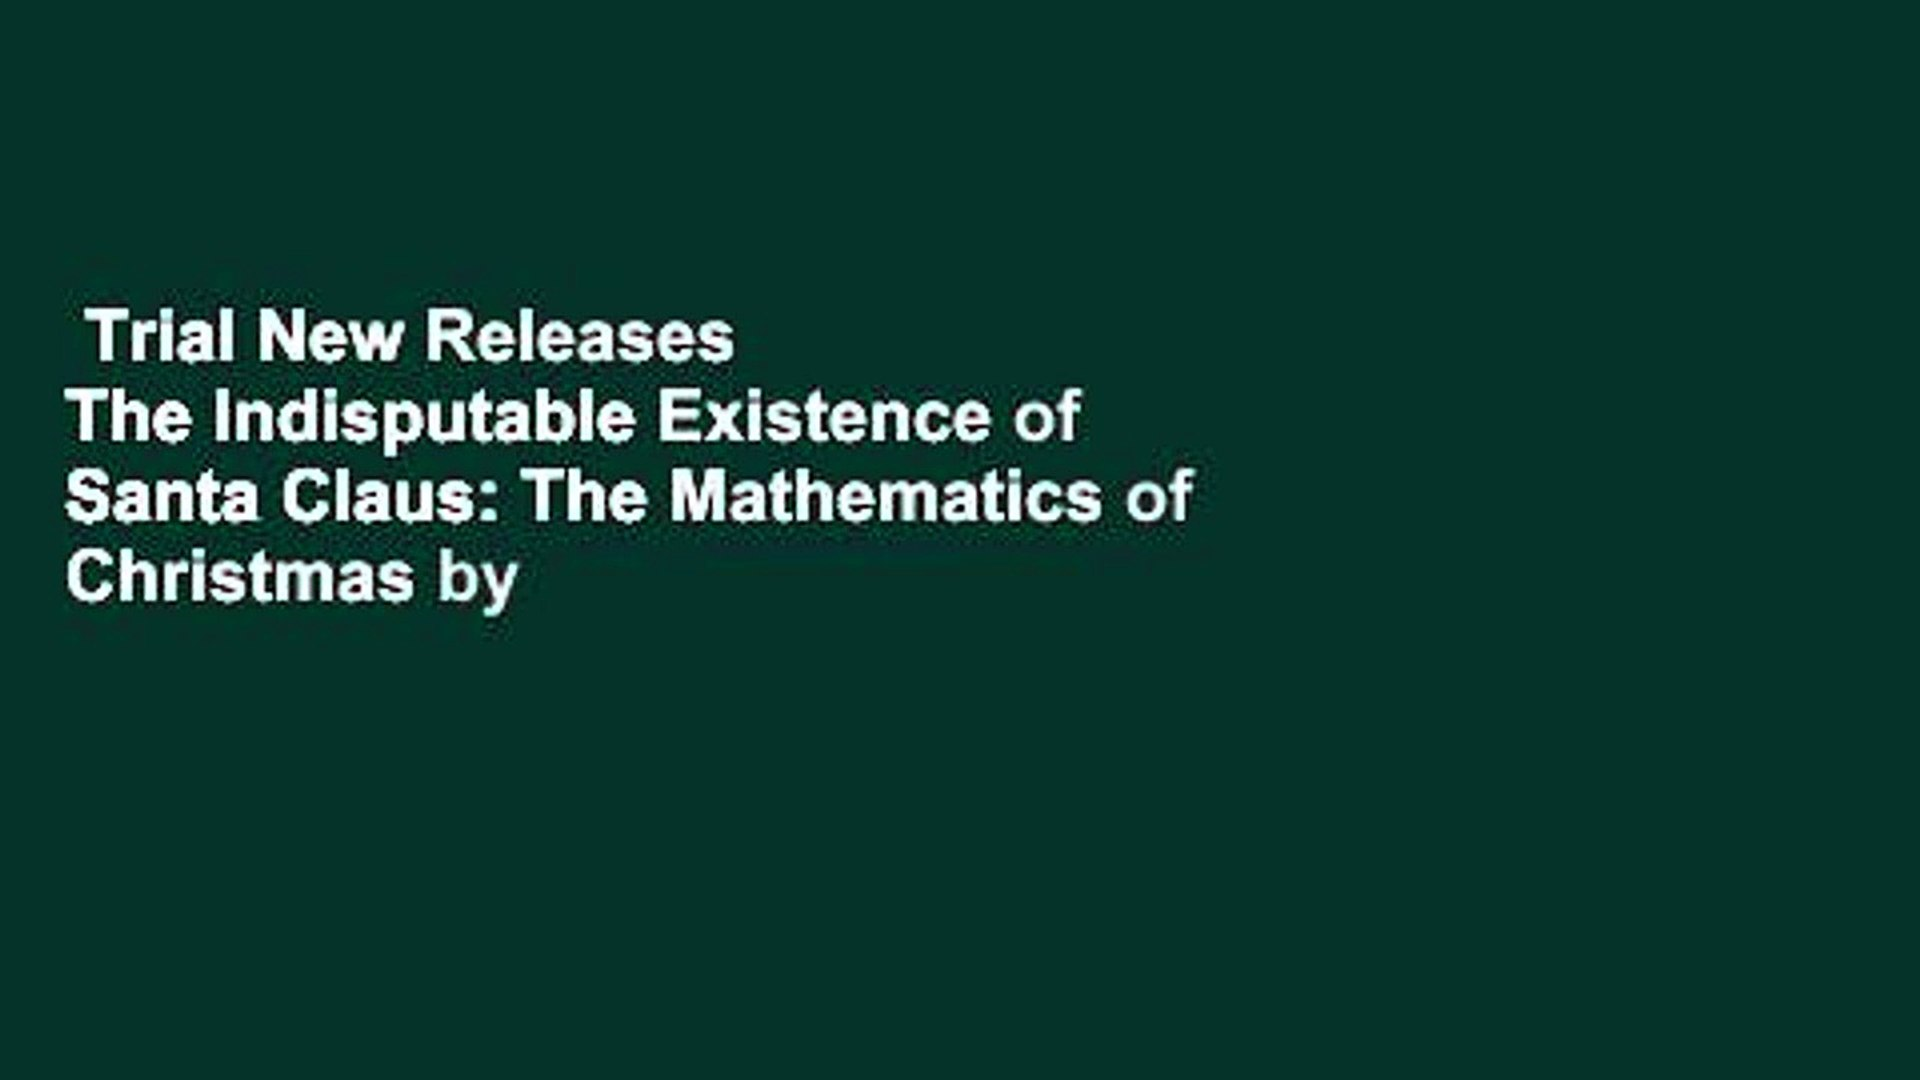 Trial New Releases  The Indisputable Existence of Santa Claus: The Mathematics of Christmas by